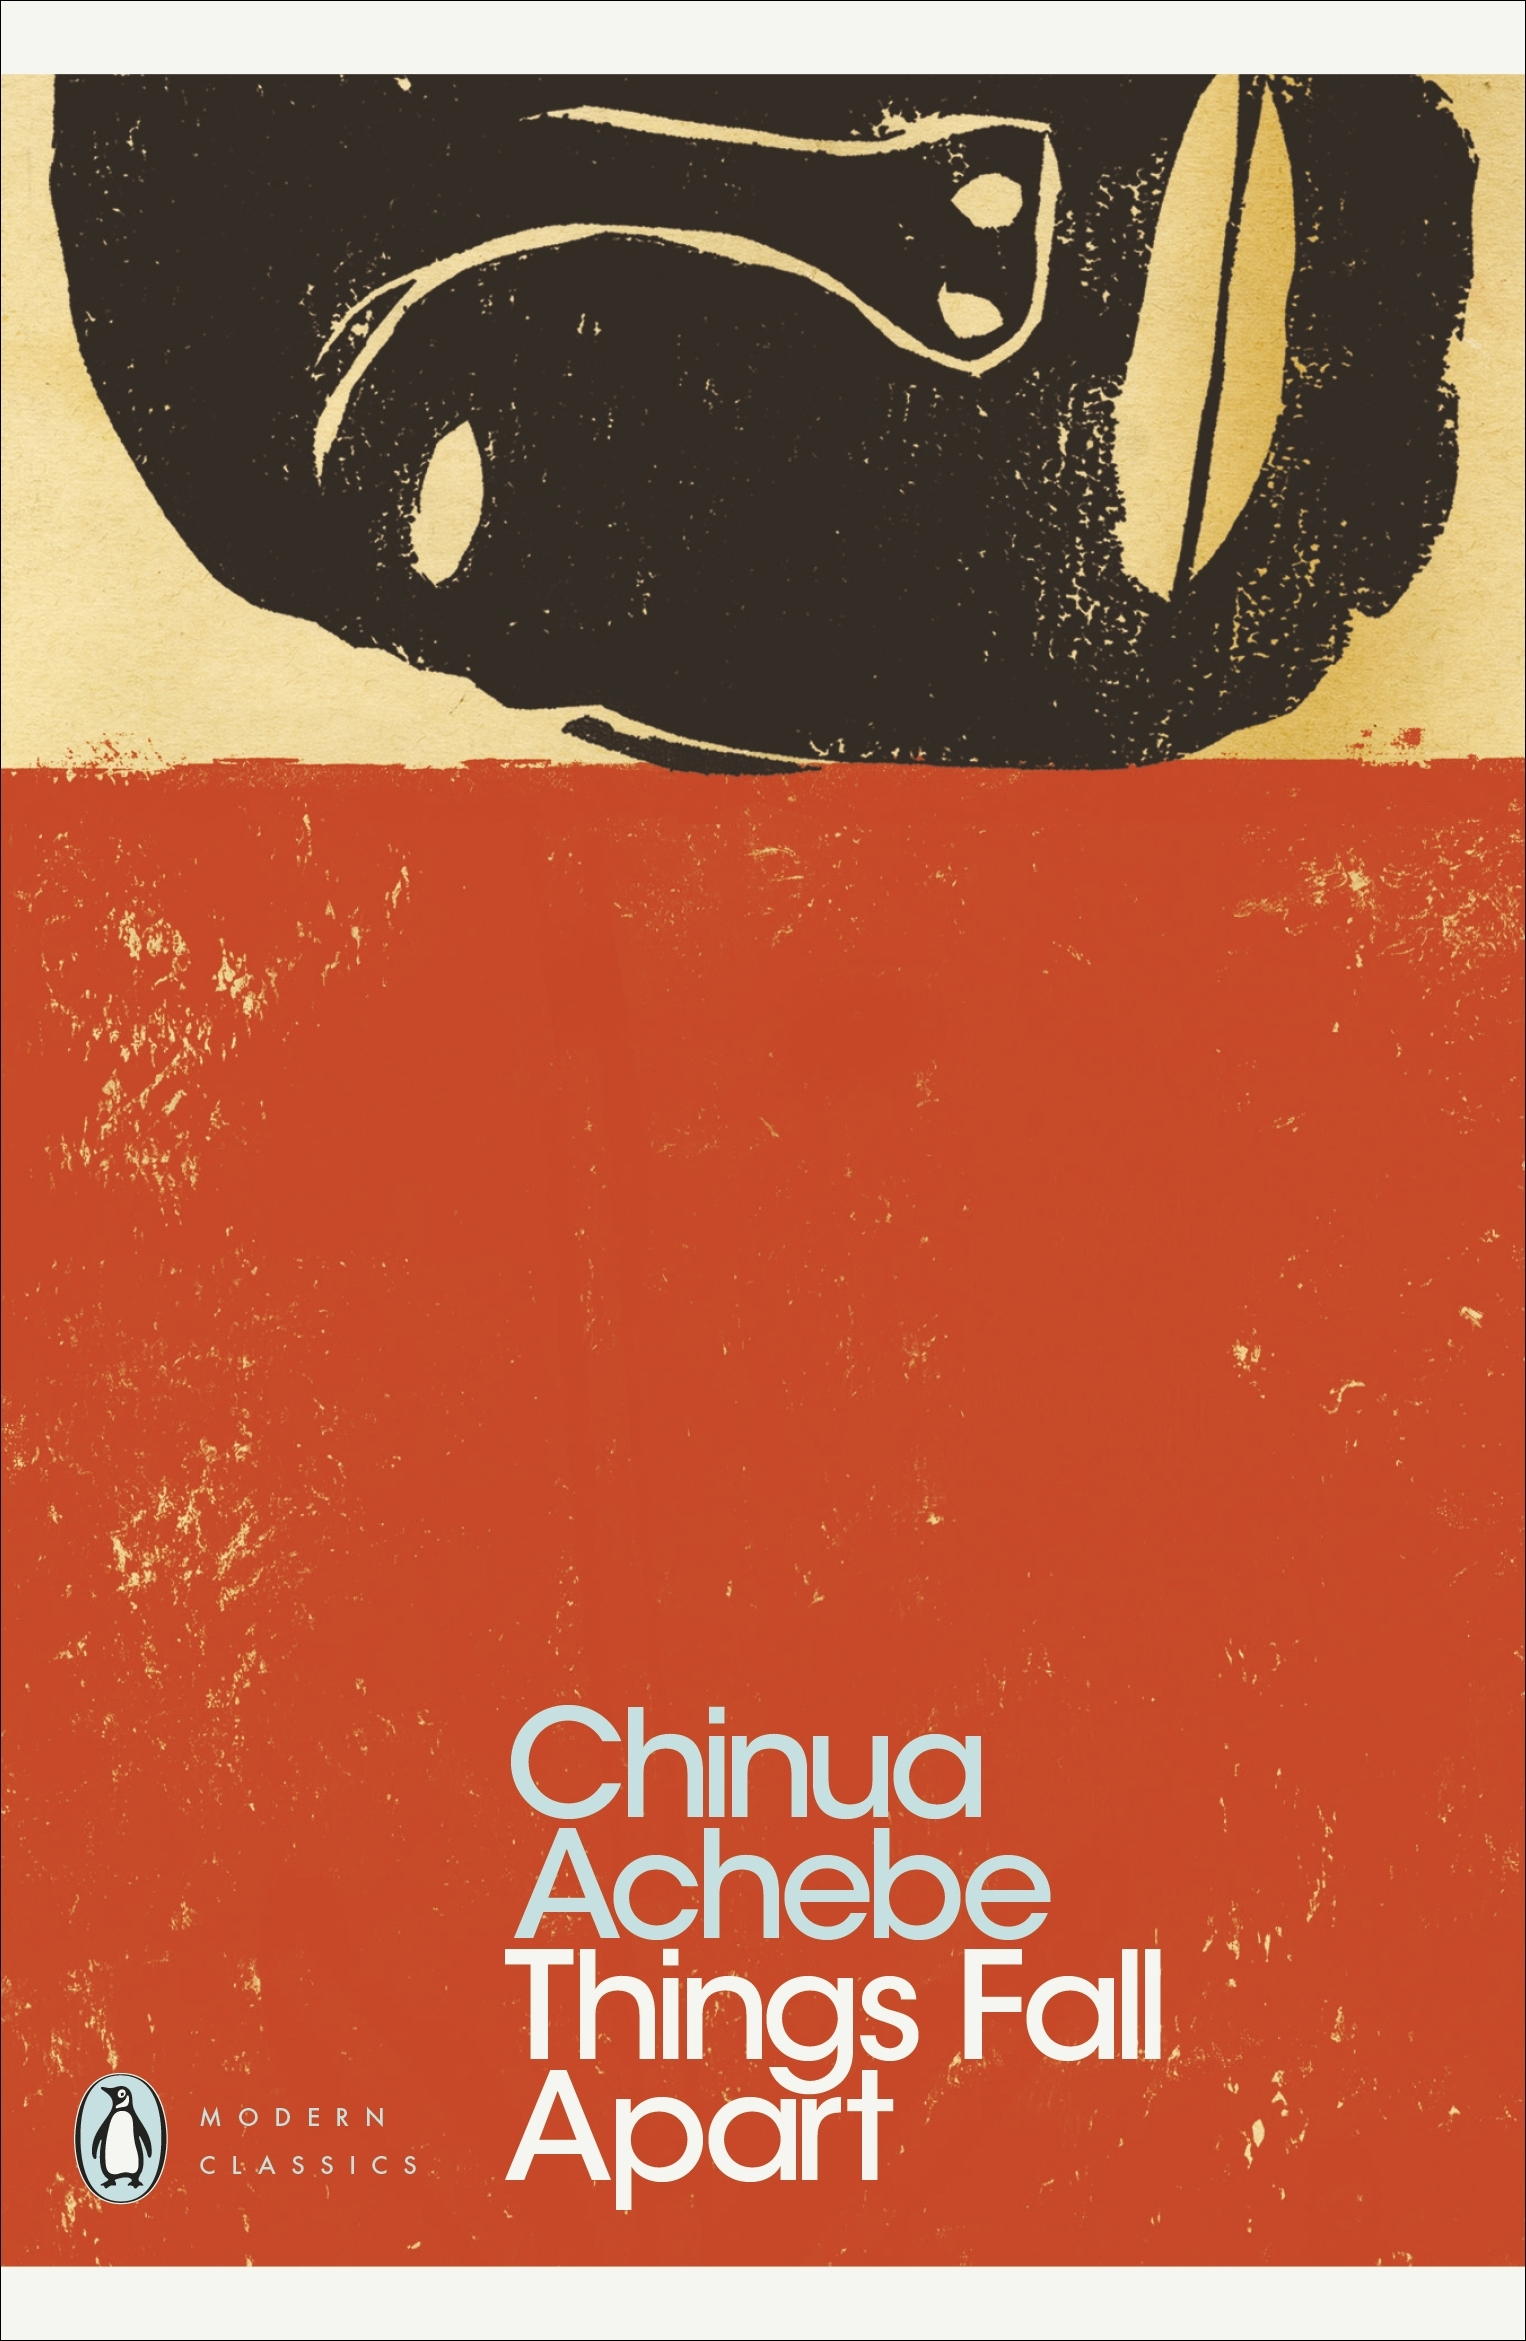 characteristics of okonowo in things fall apart by chinua achebe Compare okonkwo's character with that of nwoye (things falls apart - chinua achebe)  things fall apart - chinua achebe chinua achebe's things fall apart is authentic narrative written about life in nigeria at the turn of the twentieth century.